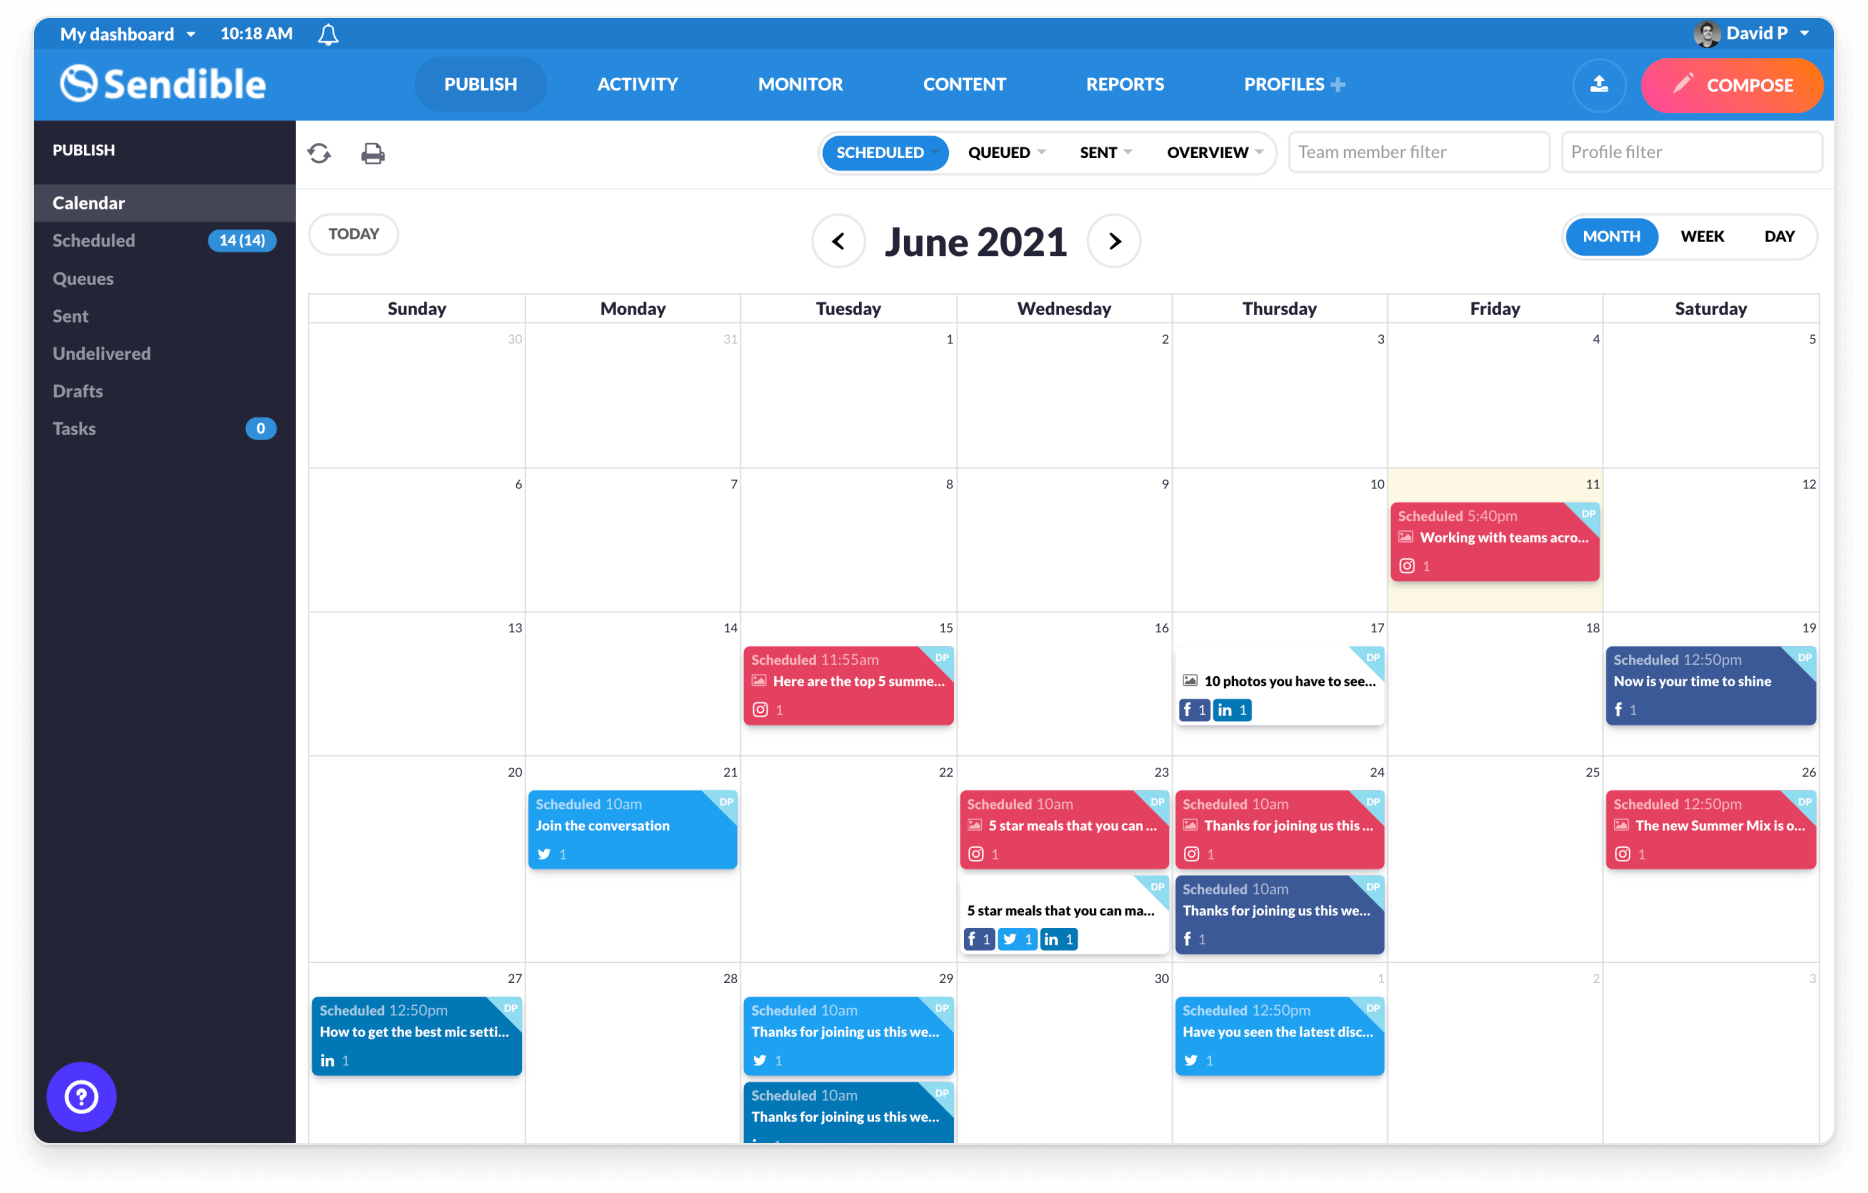 visualize content on a shared publishing calendar